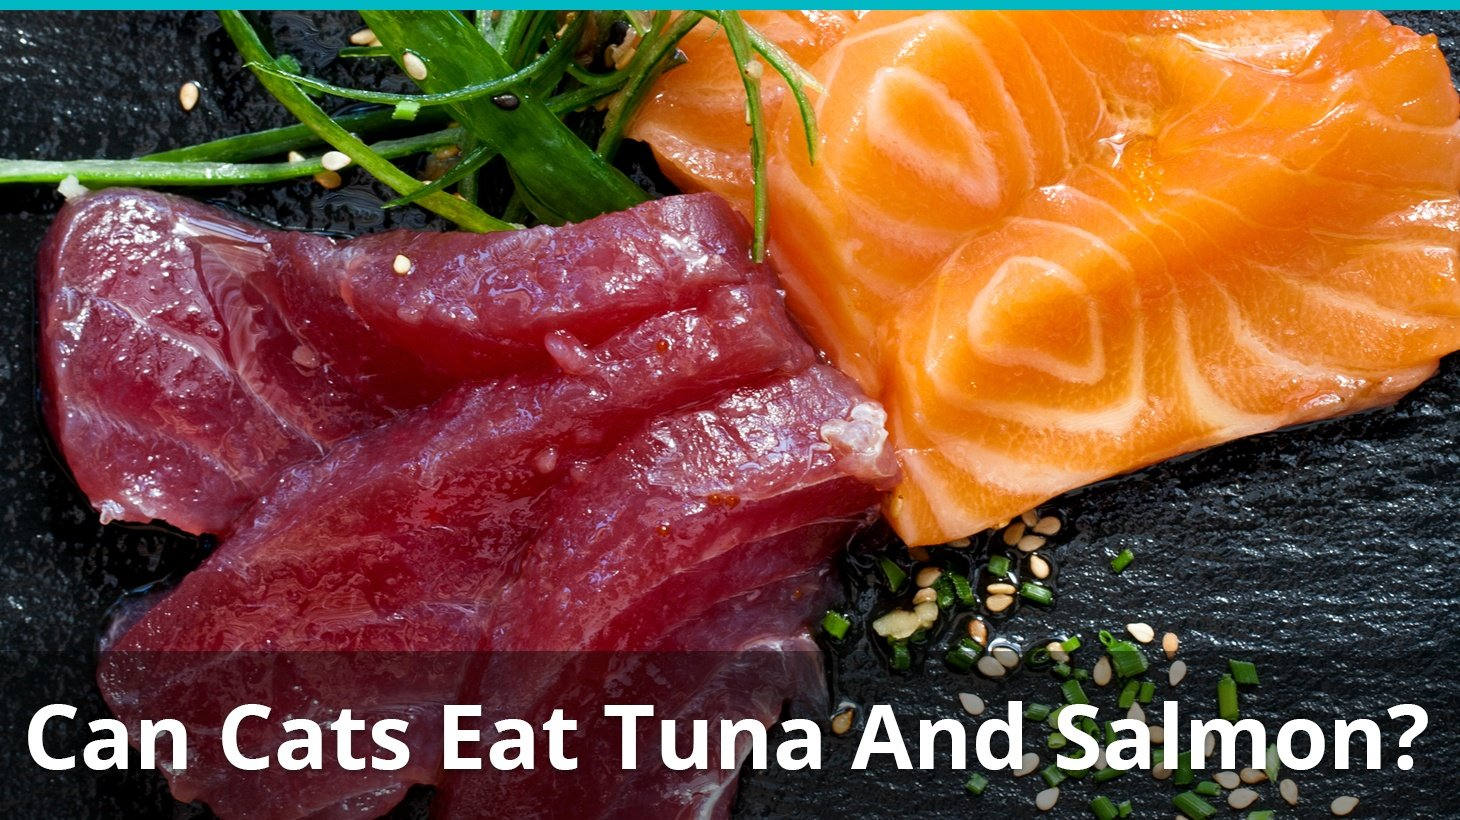 Can Cats Eat Tuna And Salmon Safely The Answer May